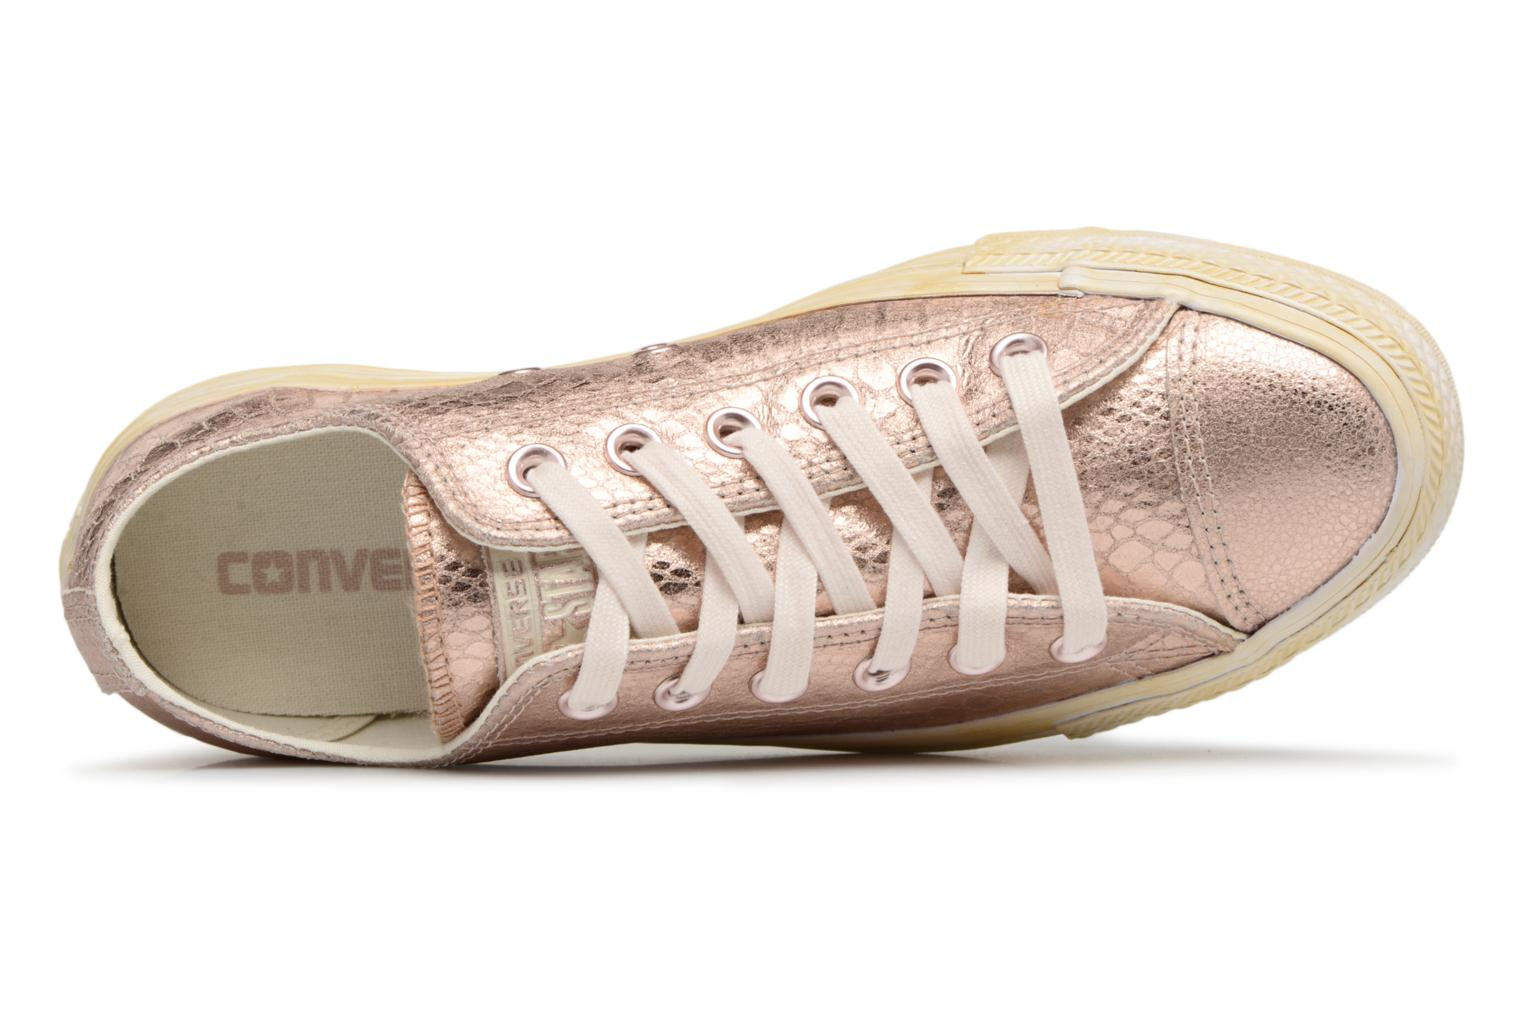 Rose Gold/White Converse CT OX ROSE GOLD/WHITE (Or et bronze)